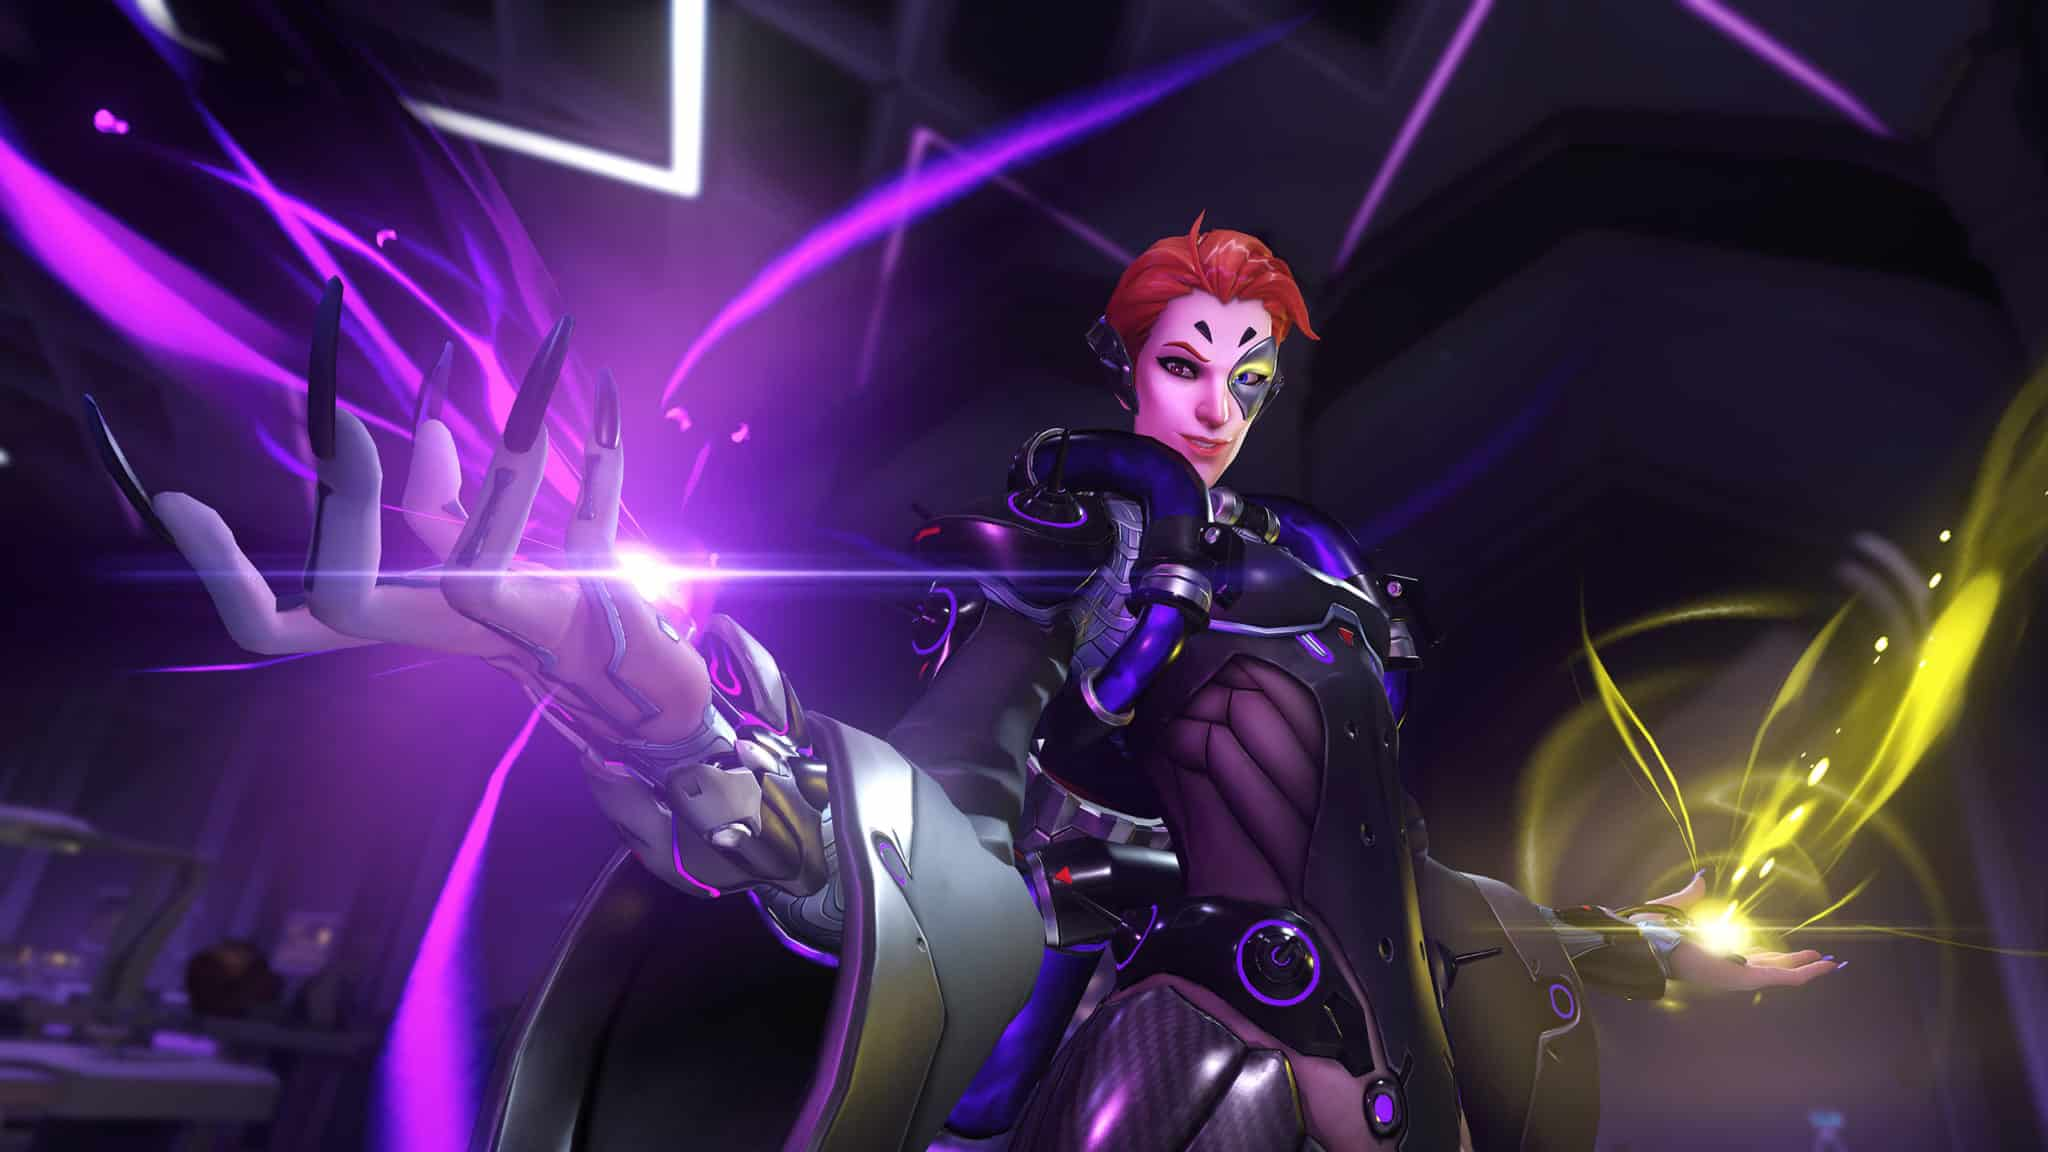 Overwatch Gets New Support Hero Moira And Blizzard World Map